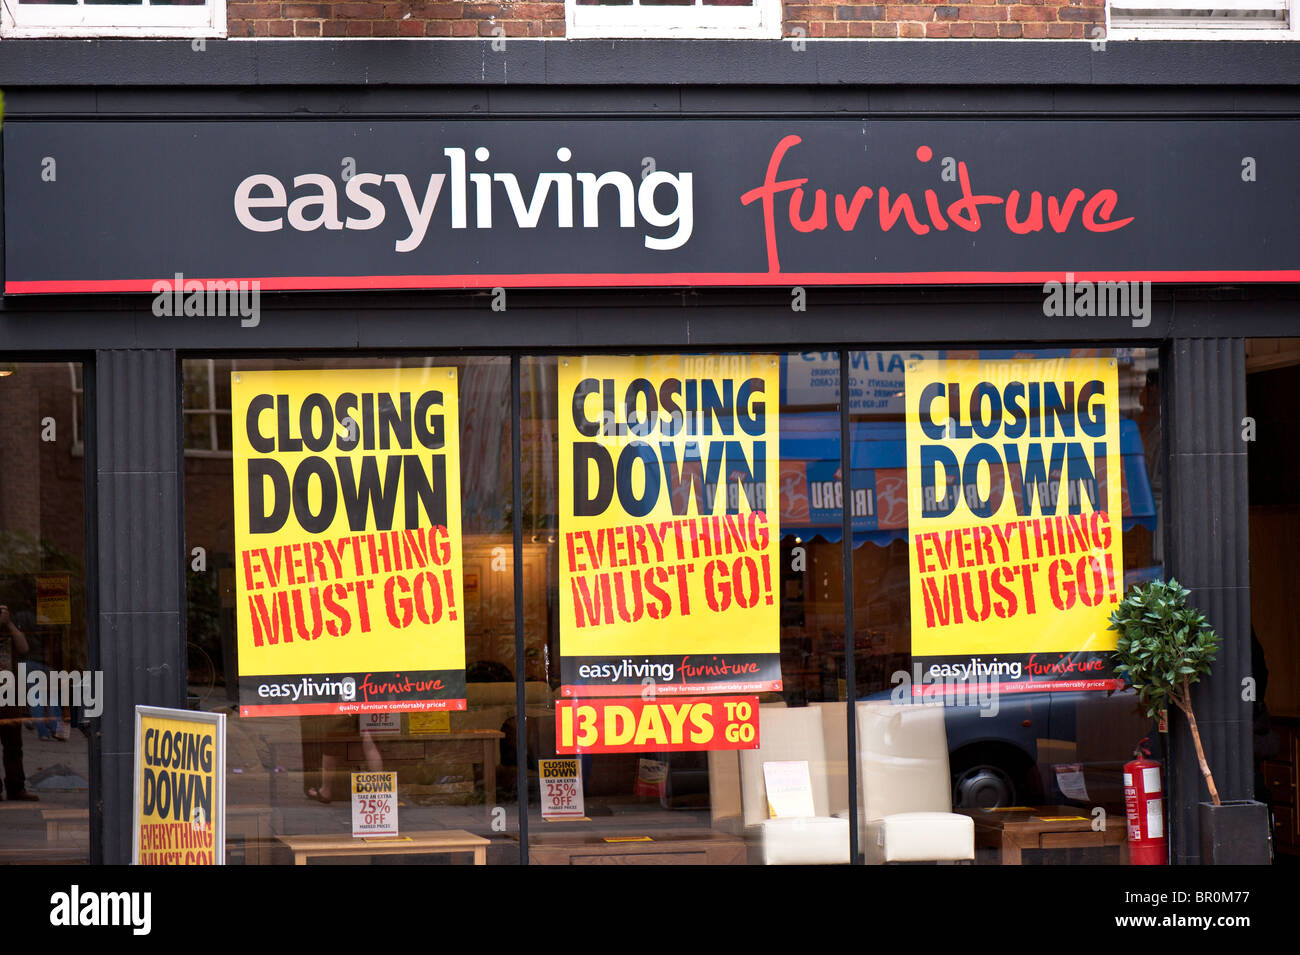 Furniture store closing down, Fitzrovia, W1, London, United Kingdom - Stock Image